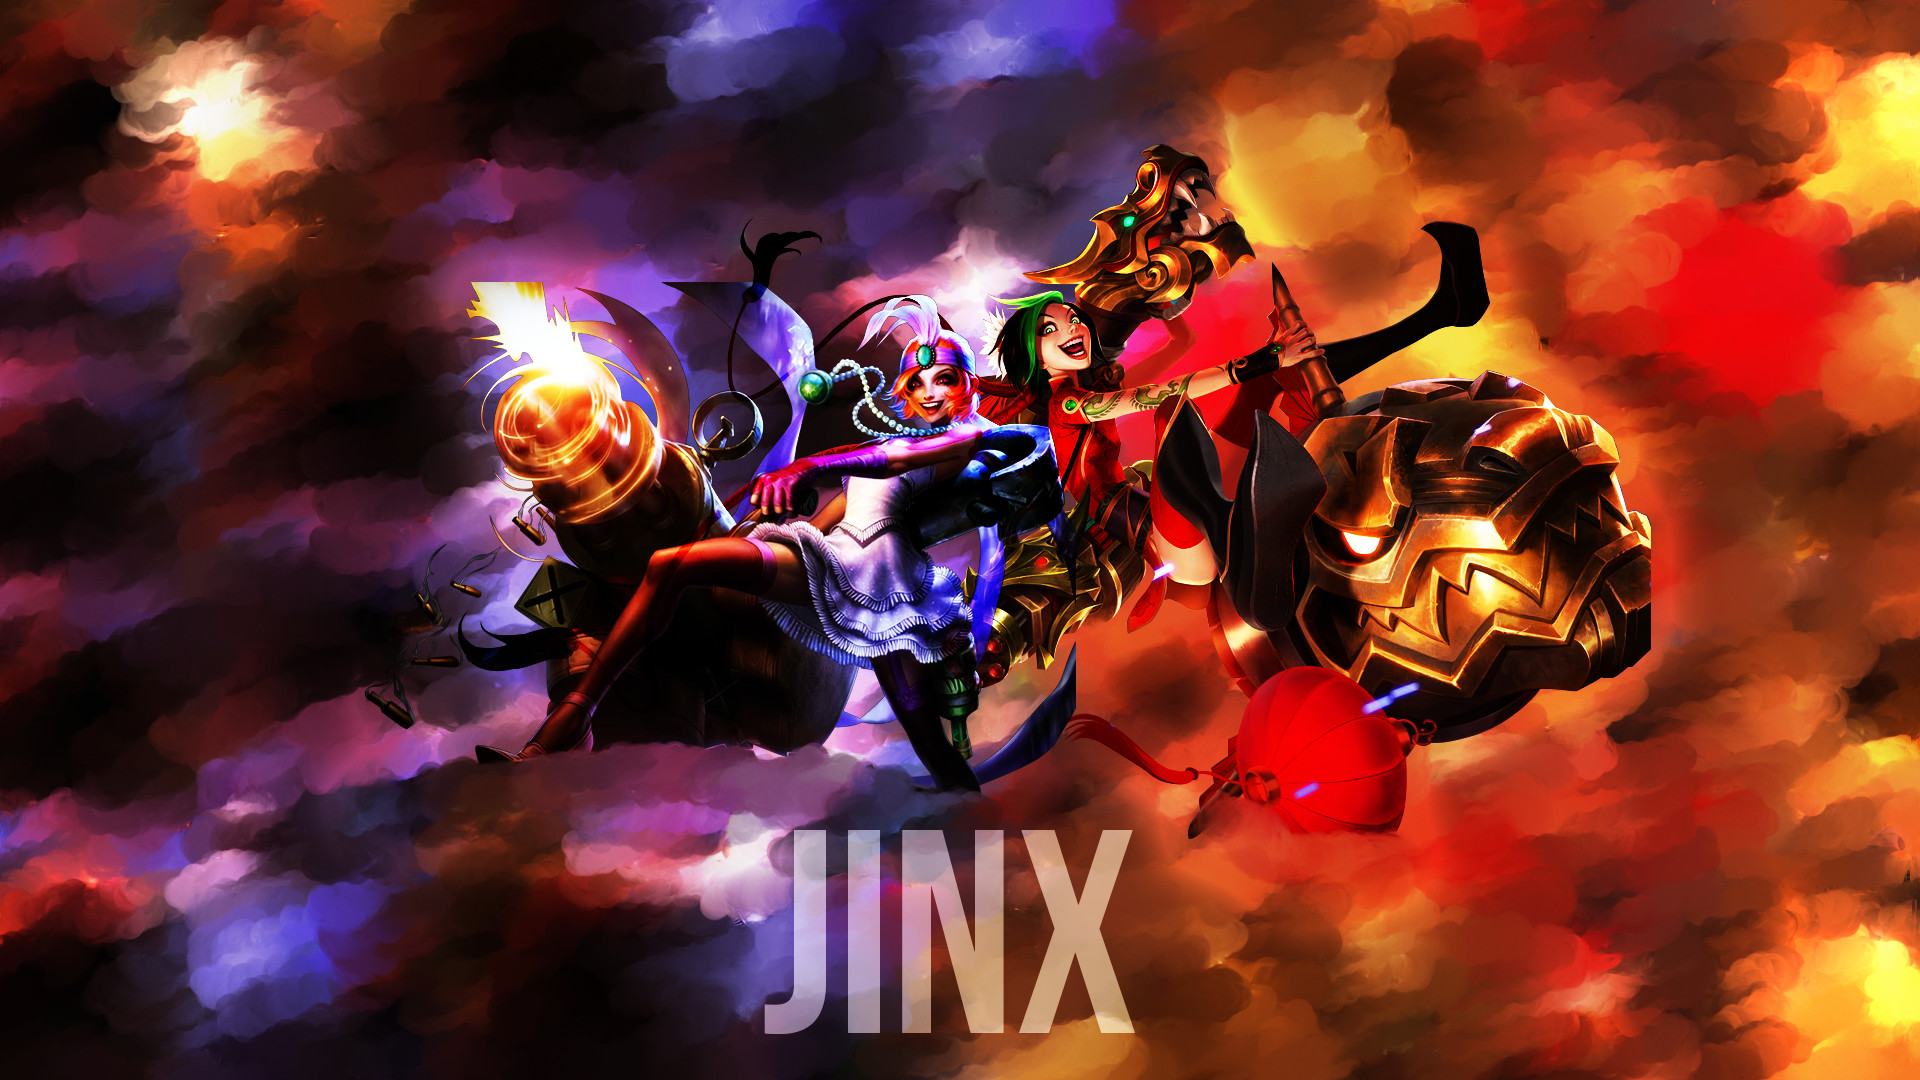 1920x1080 Mafia Firecracker Jinx Fan Art League of Legends Wallpapers